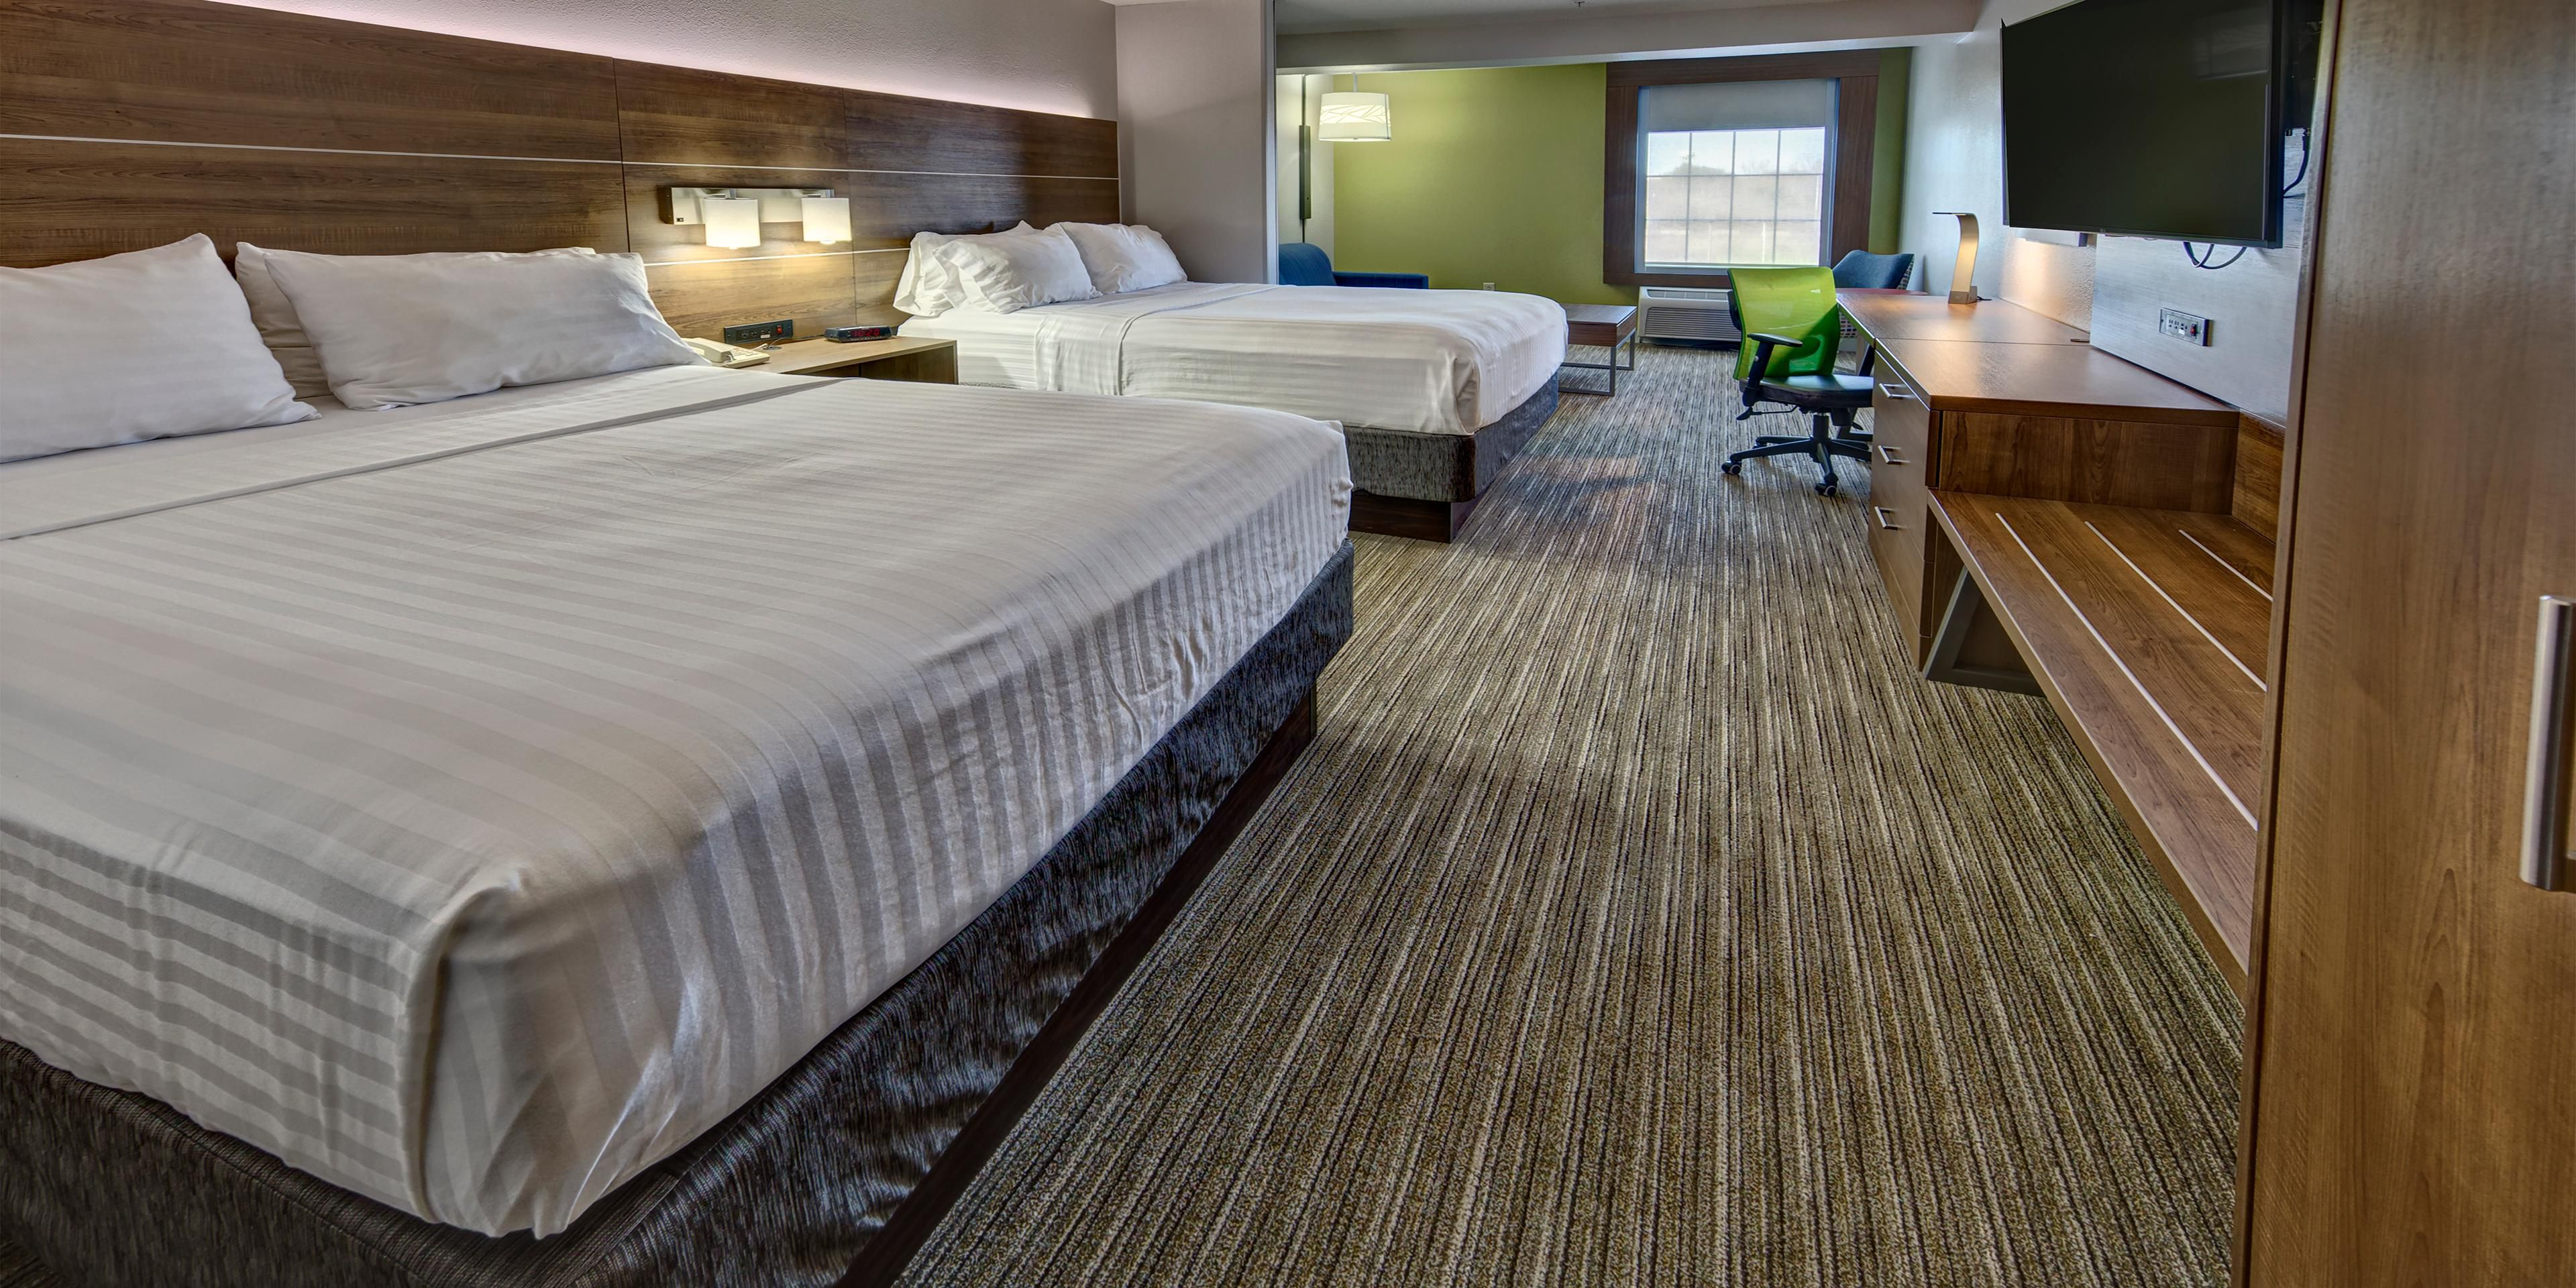 Holiday Inn Express & Suites Crossville Hotel by IHG